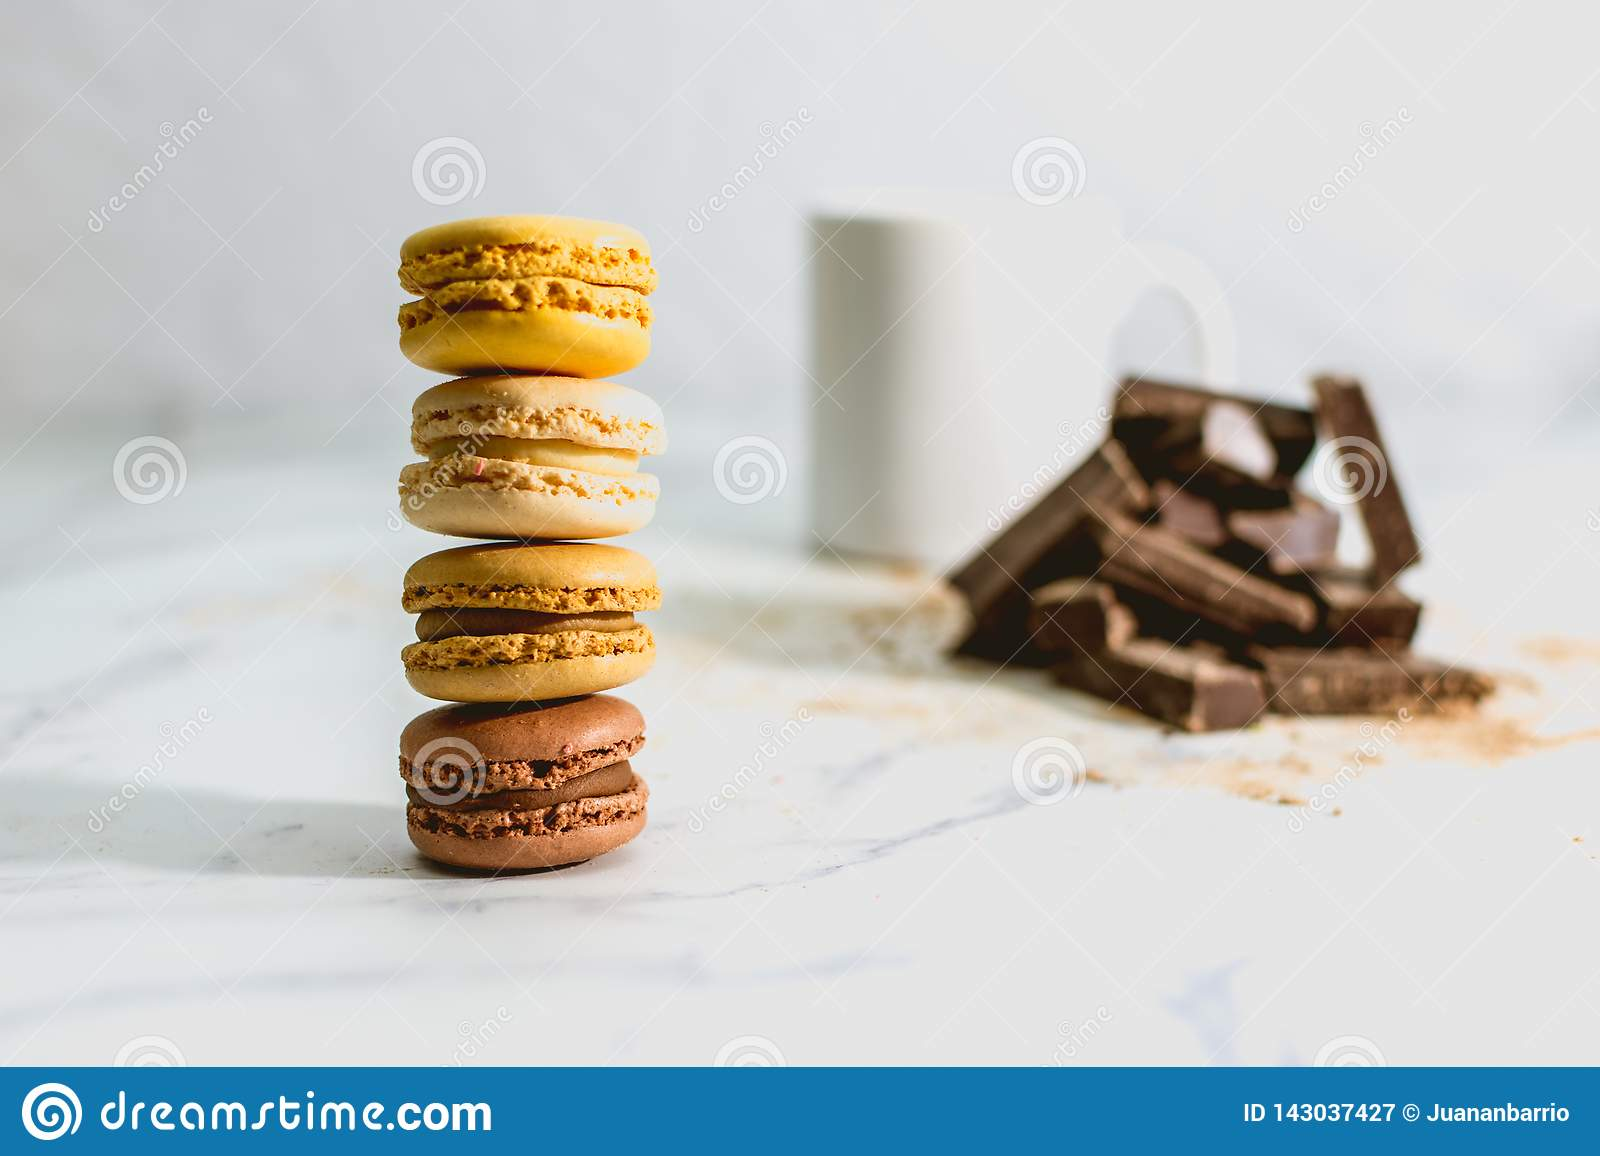 Tasty sweet macarons with cup of coffee on background